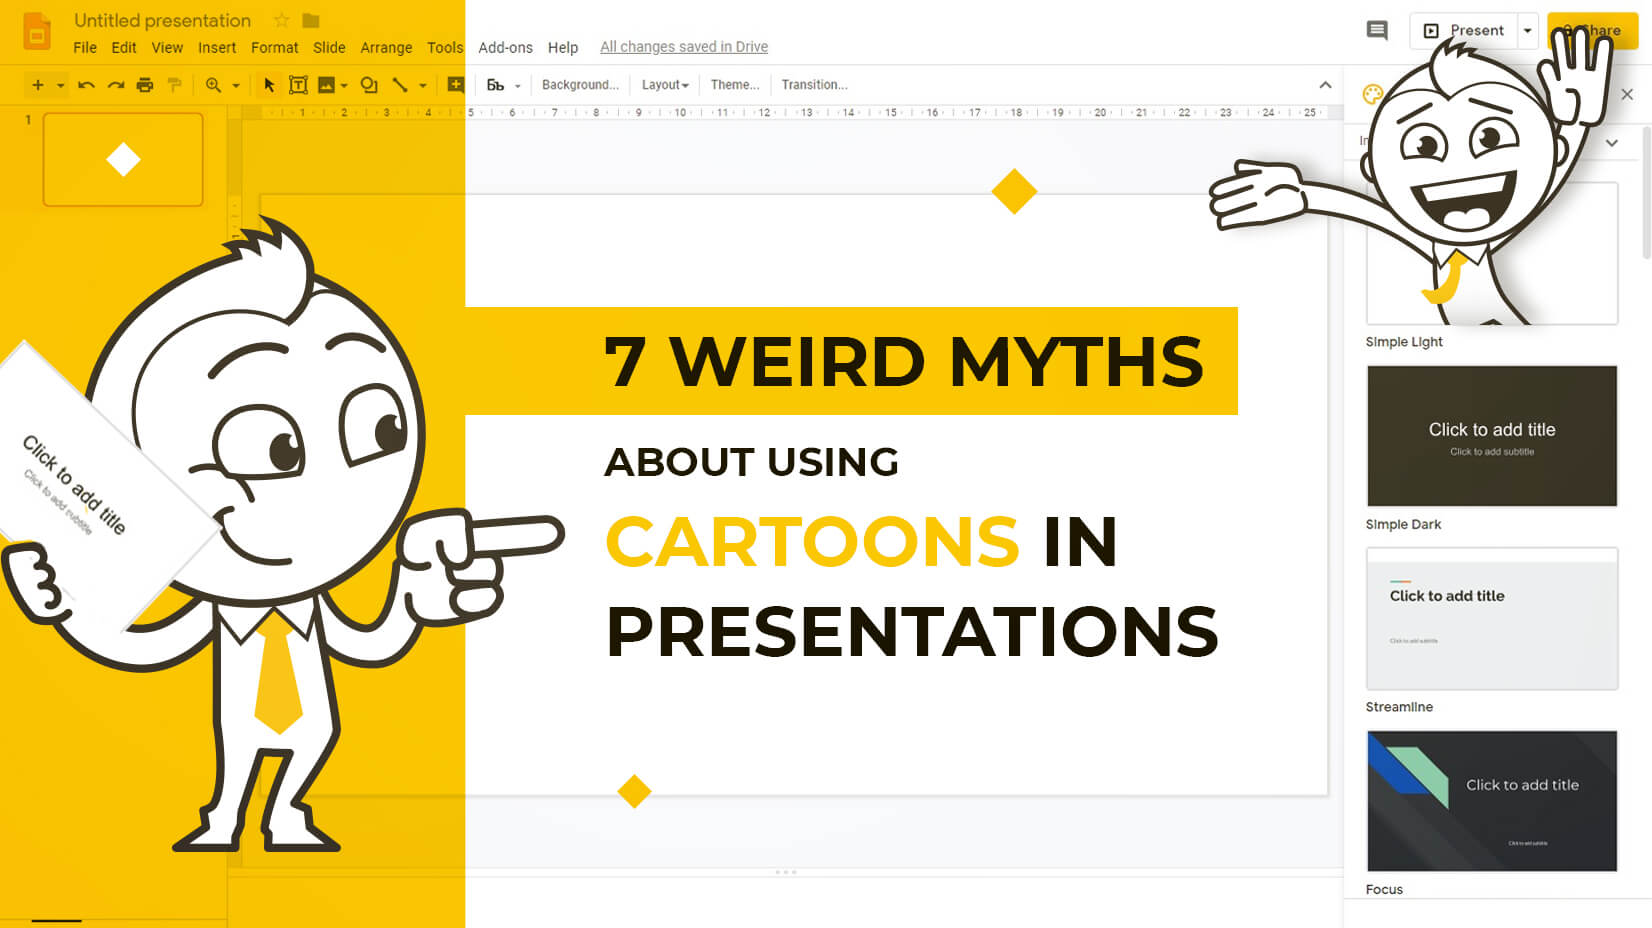 7 Weird Myths About Using Cartoons in Presentations